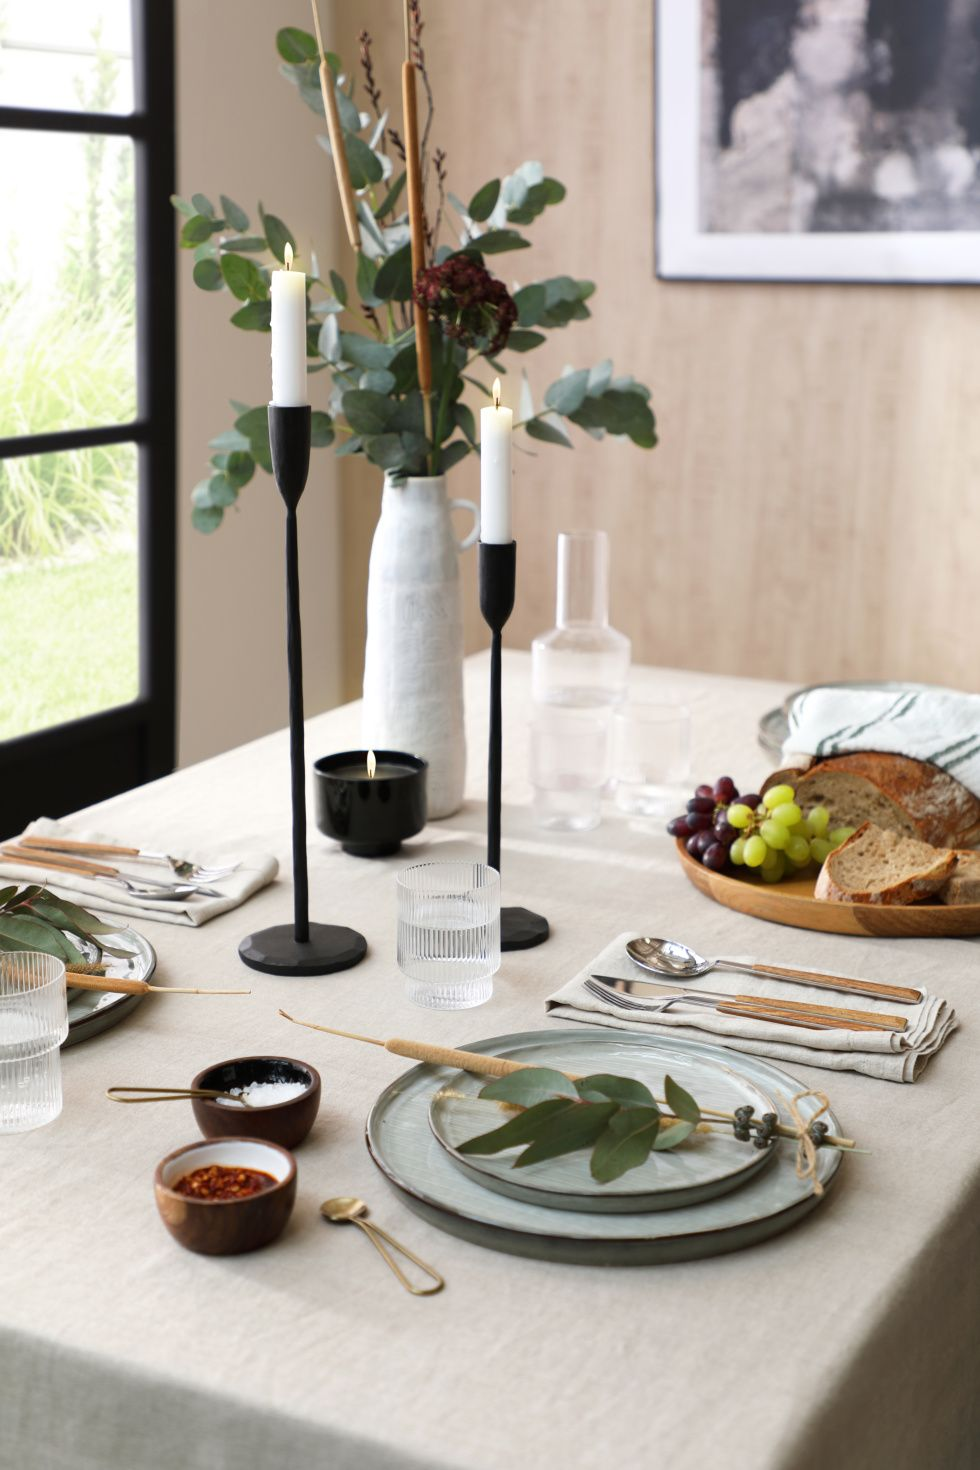 Japandi style dining table with ceramic dinnerware and a plant centrepiece